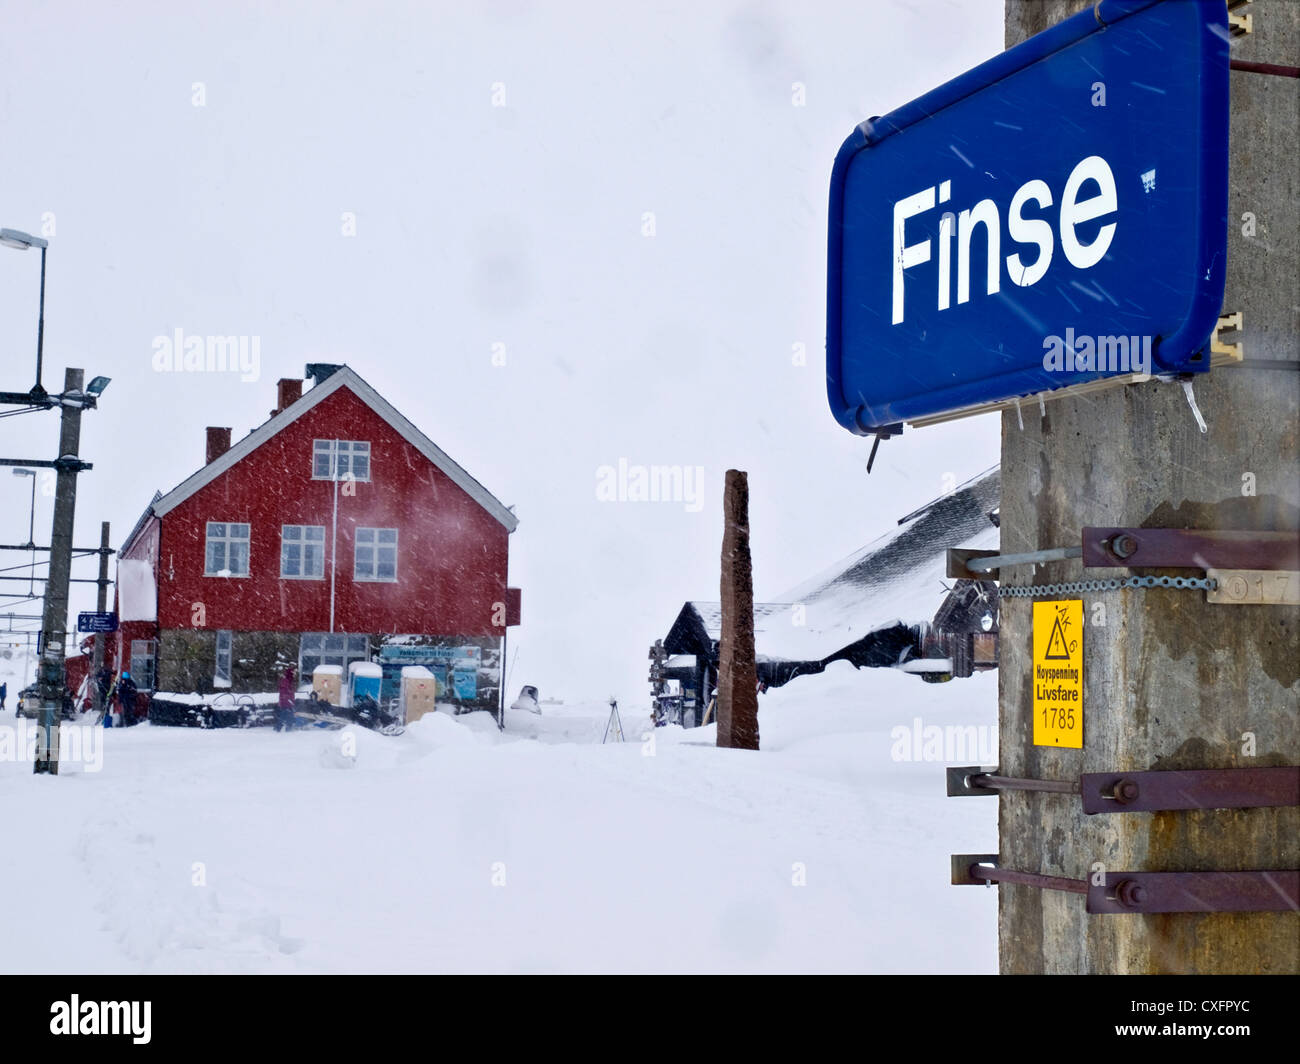 the railway station at Finse on the Oslo-Bergen line in Norway - Stock Image